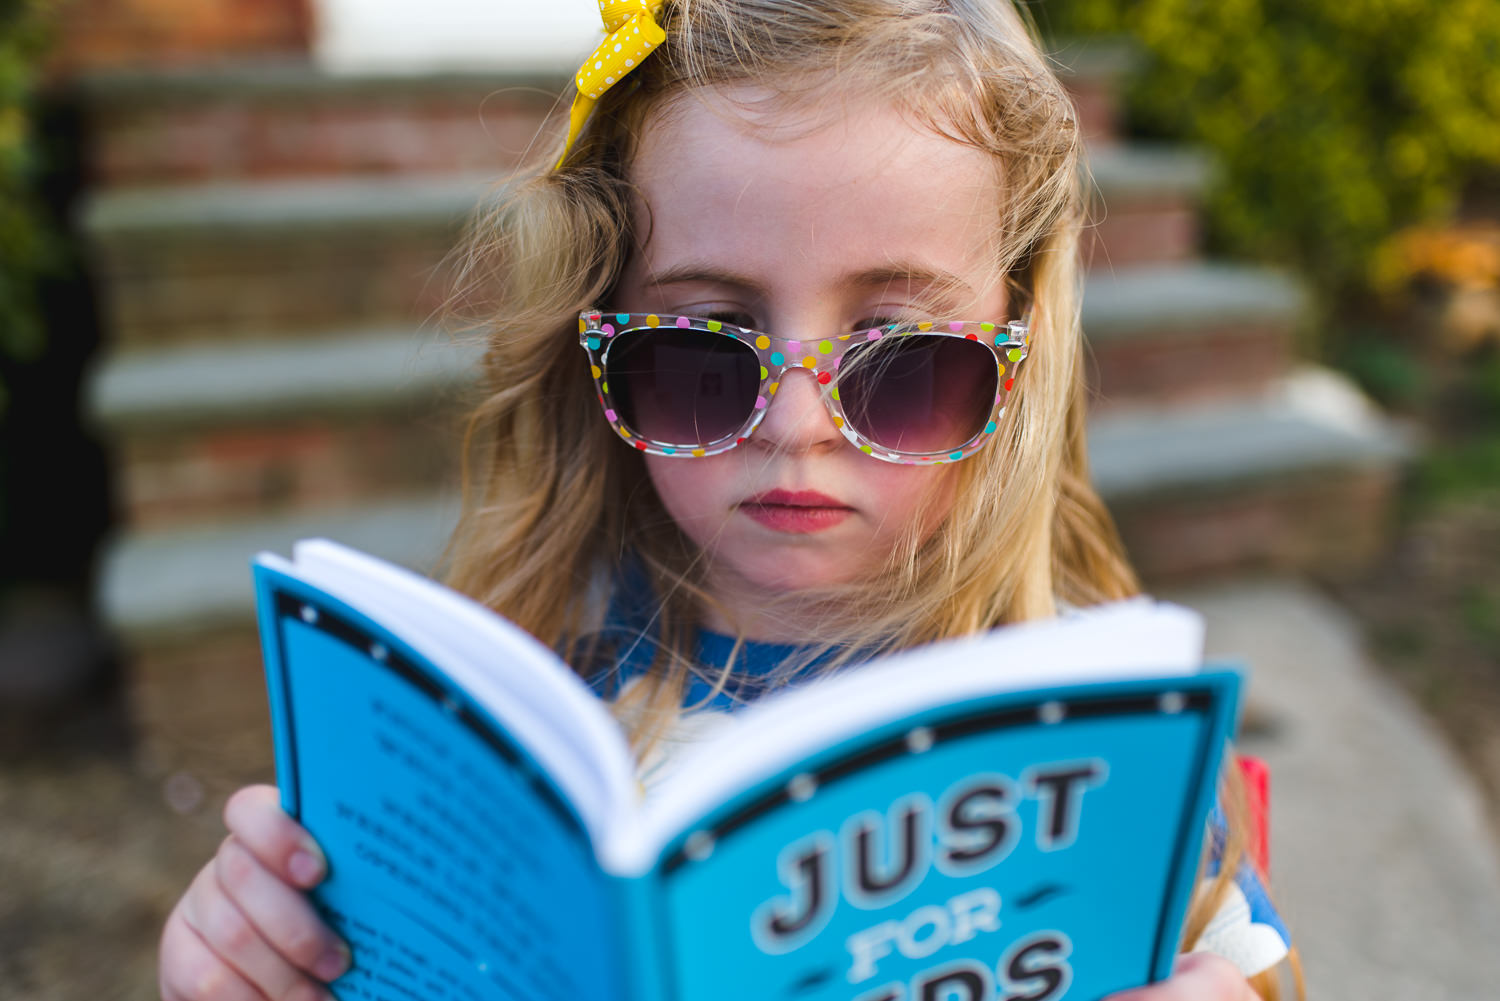 Little girl in sunglasses reading a book outside.